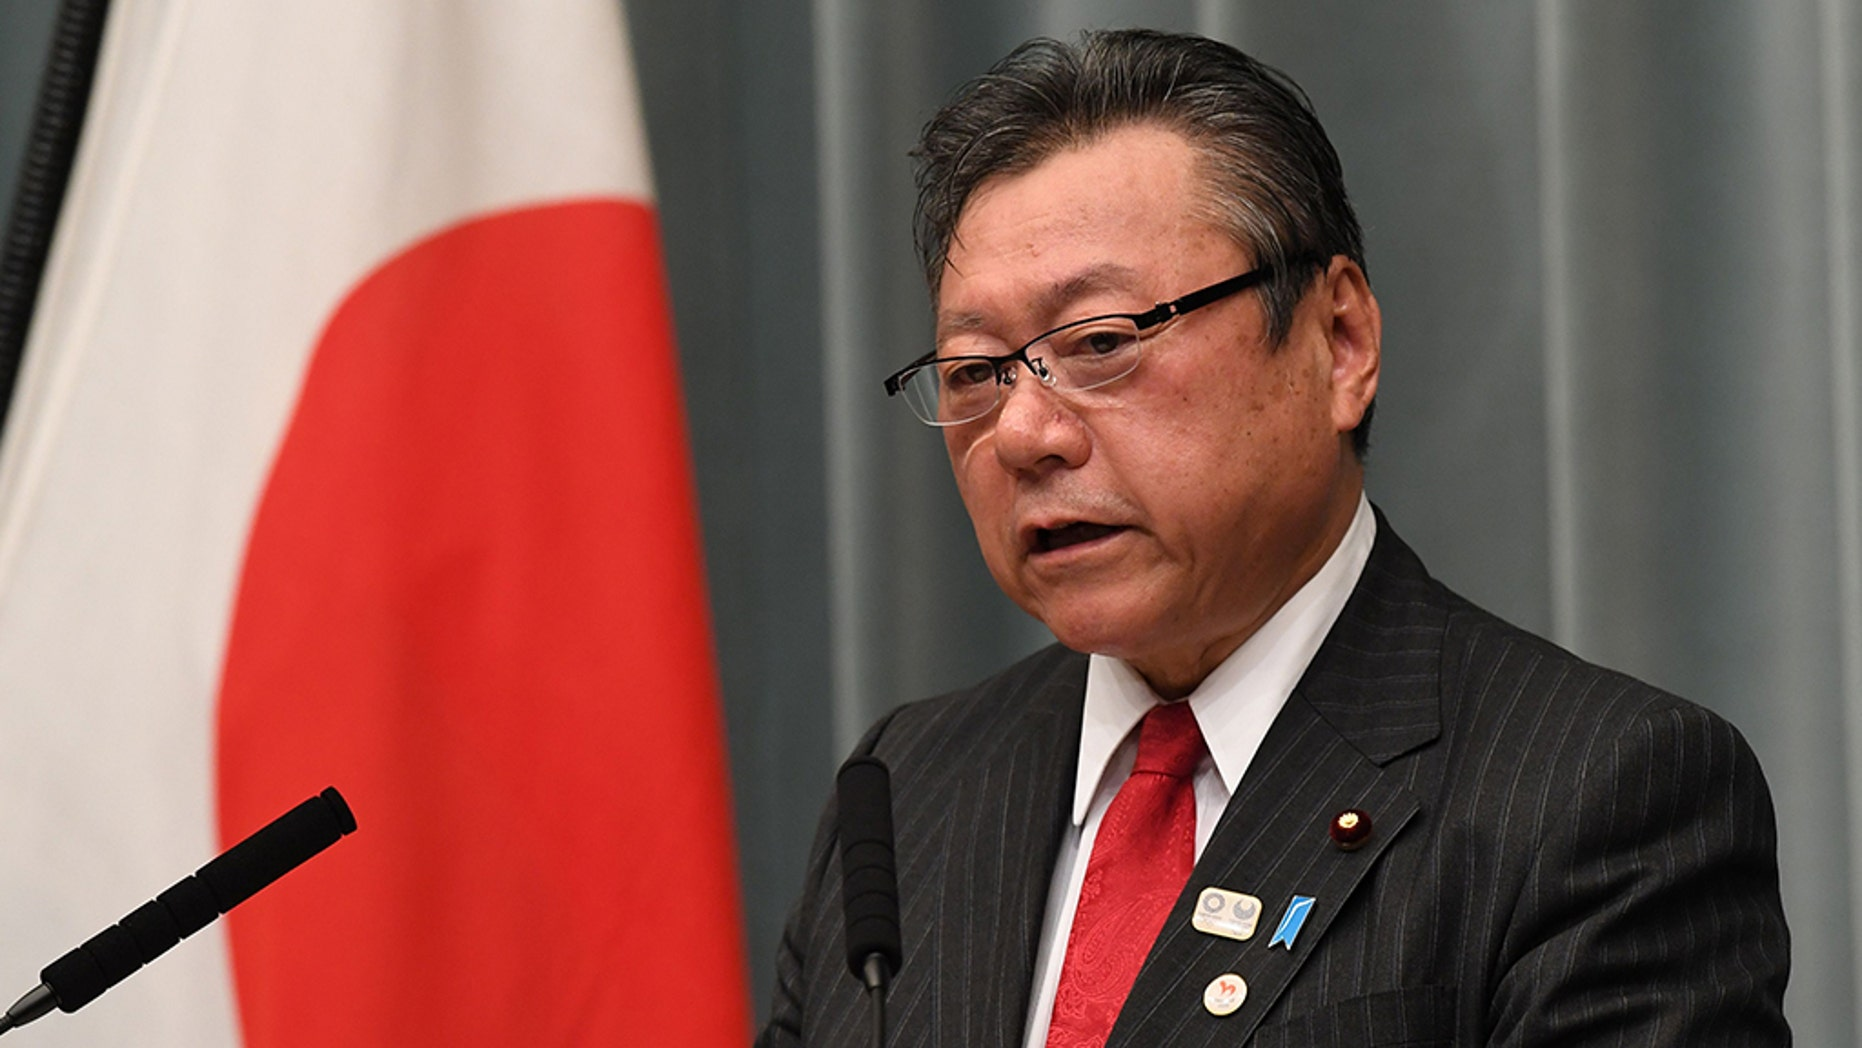 Japanese Olympic Minister Yoshitaka Sakurada has been forced to apologize after arriving three minutes late to a parliamentary meeting on Thursday